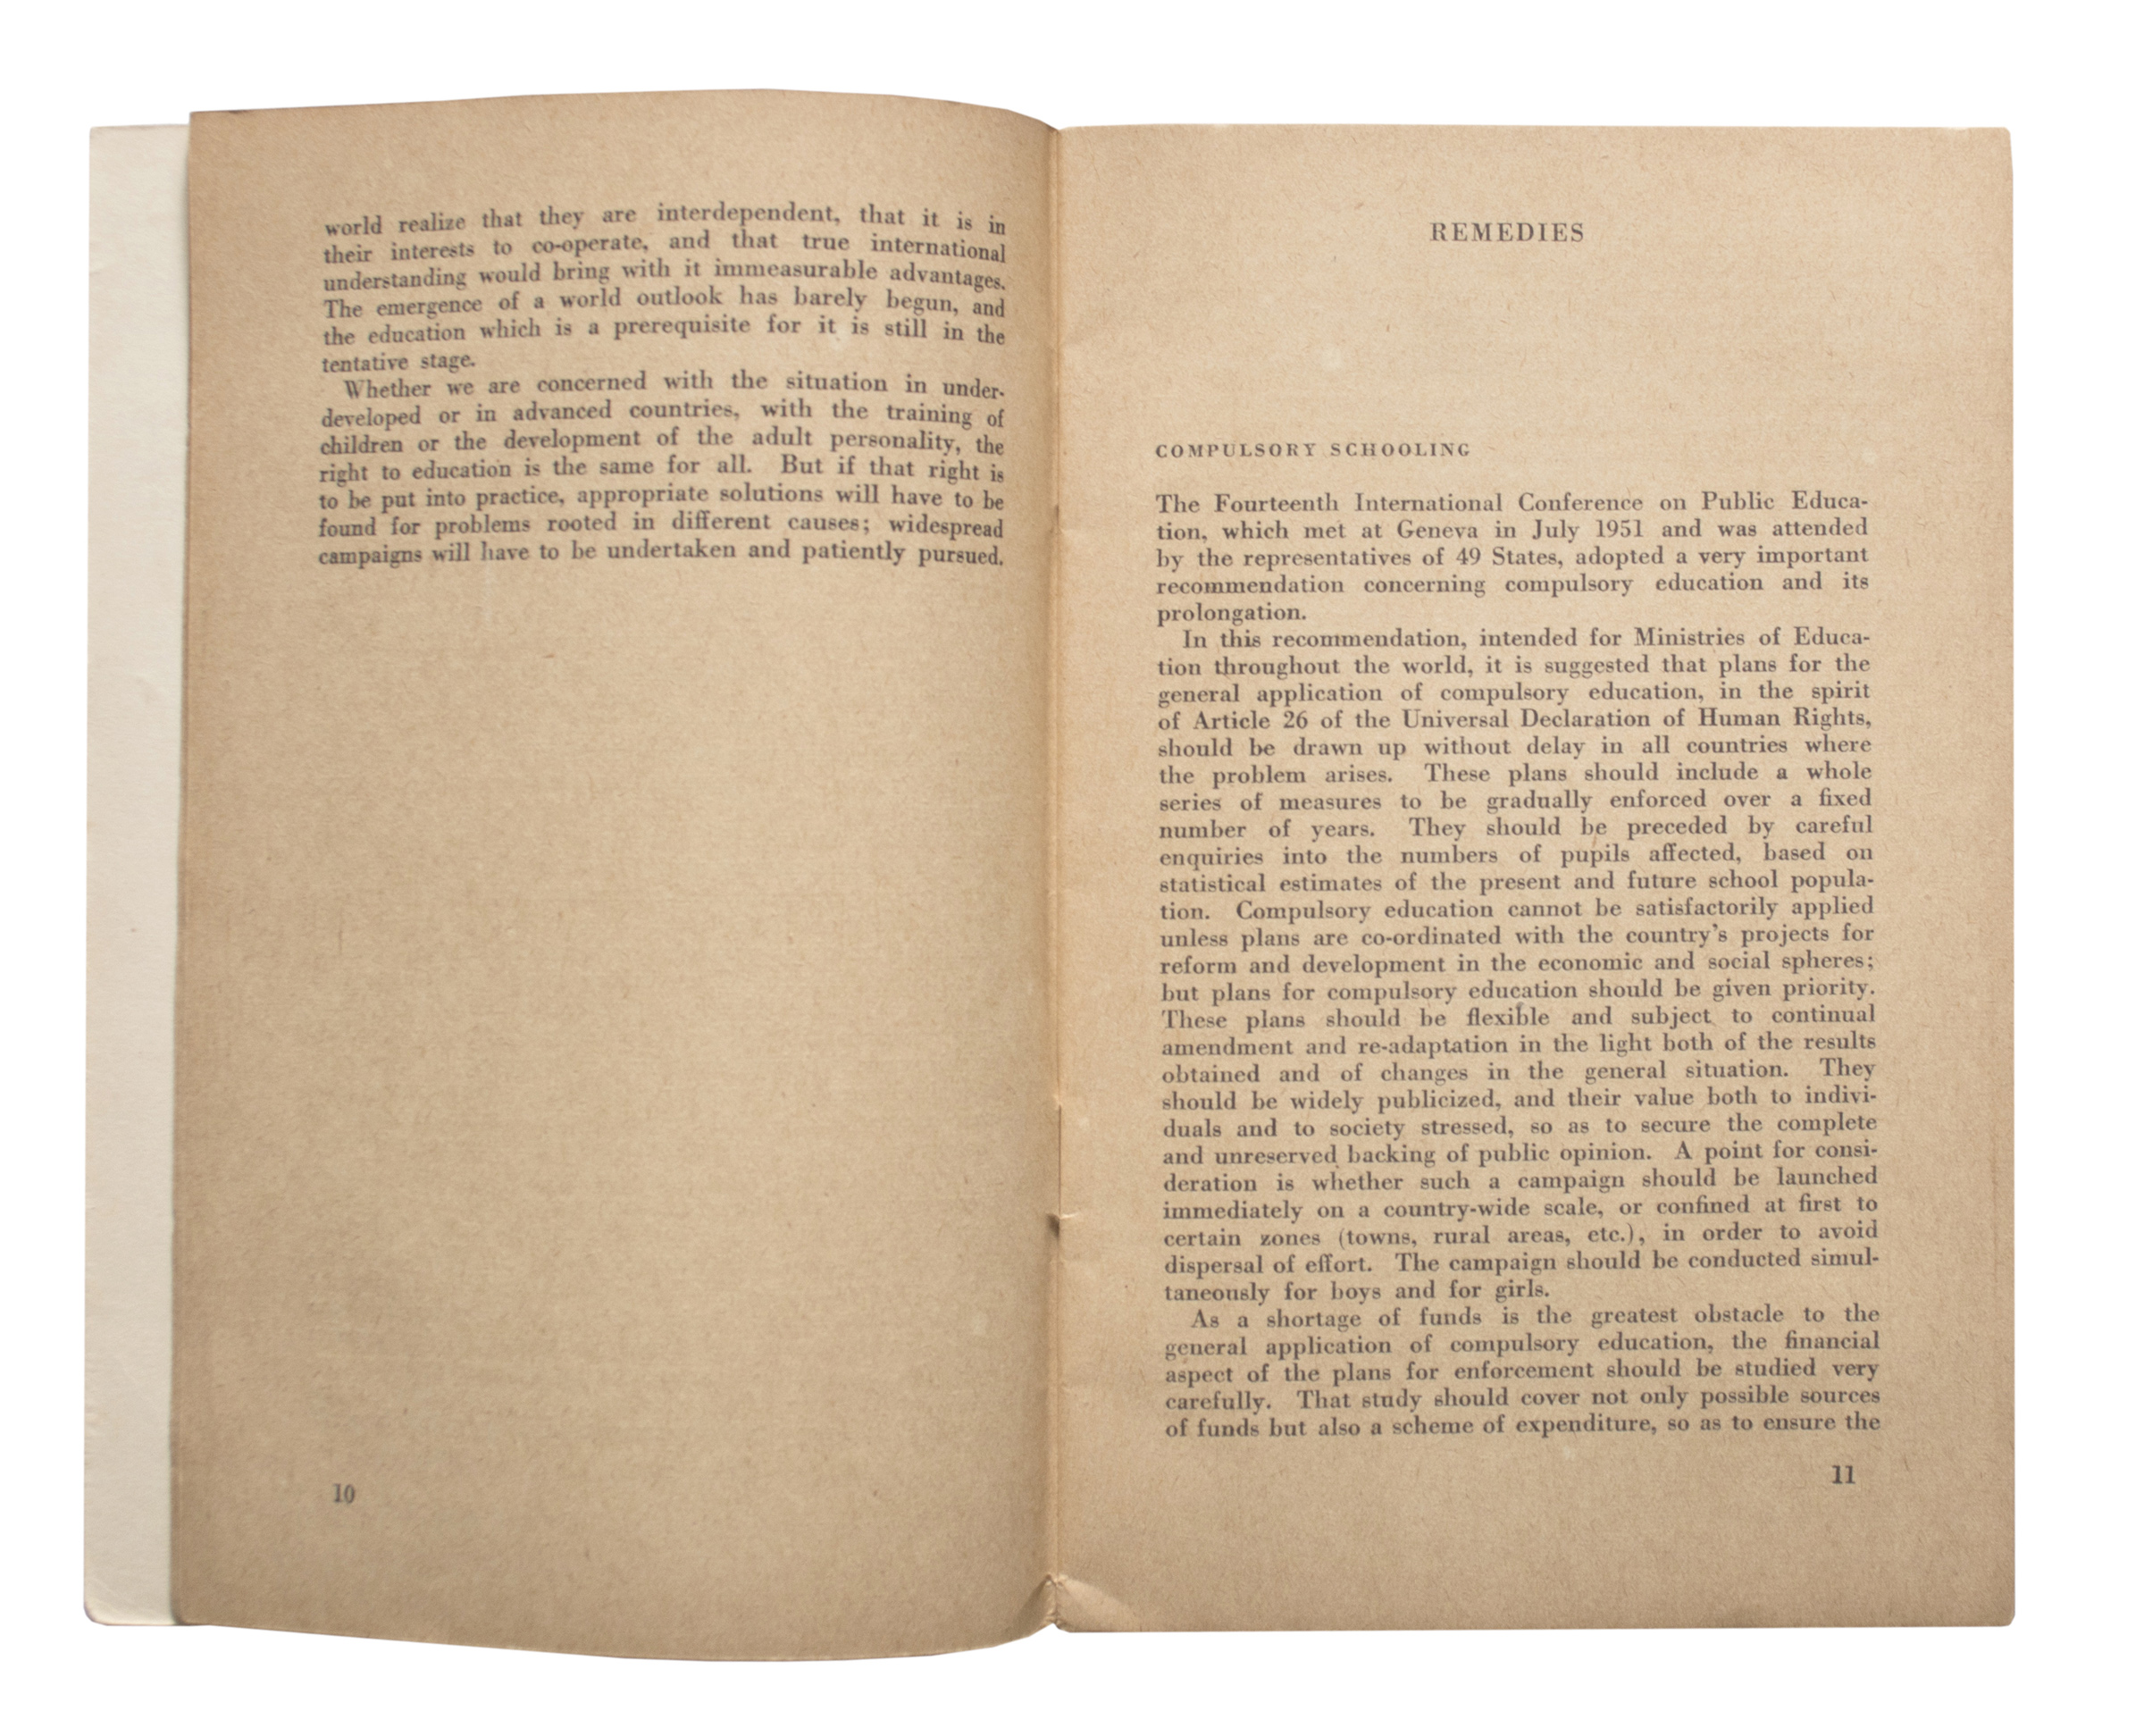 Right to Education Pamphlet Published by UNESCO in 1952